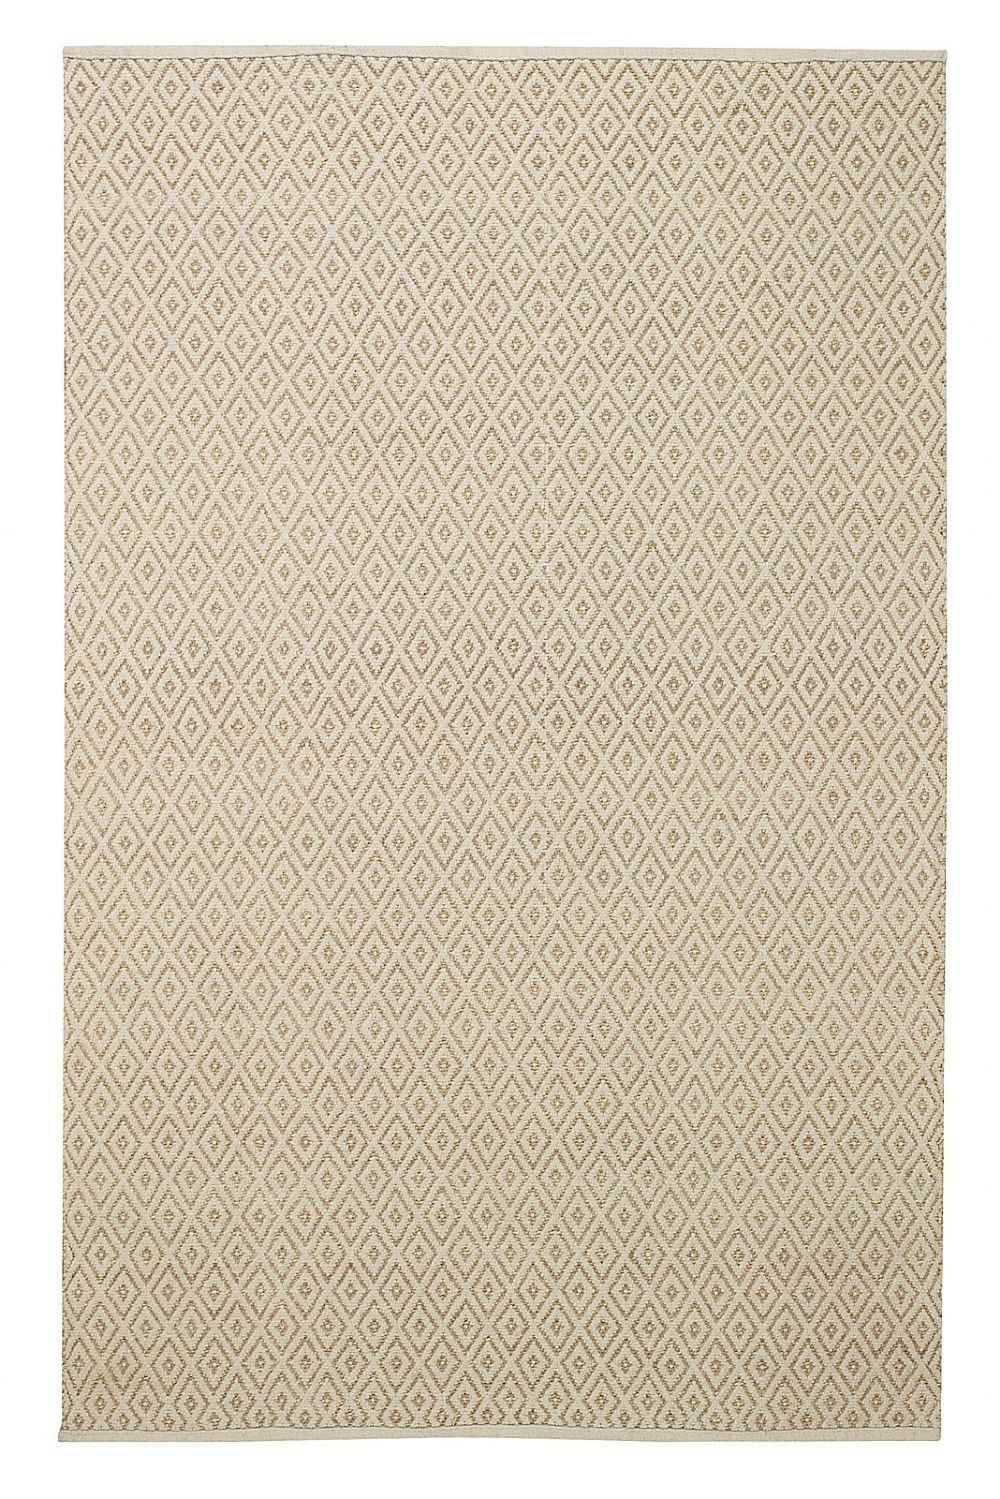 capel rhinestone contemporary area rug collection